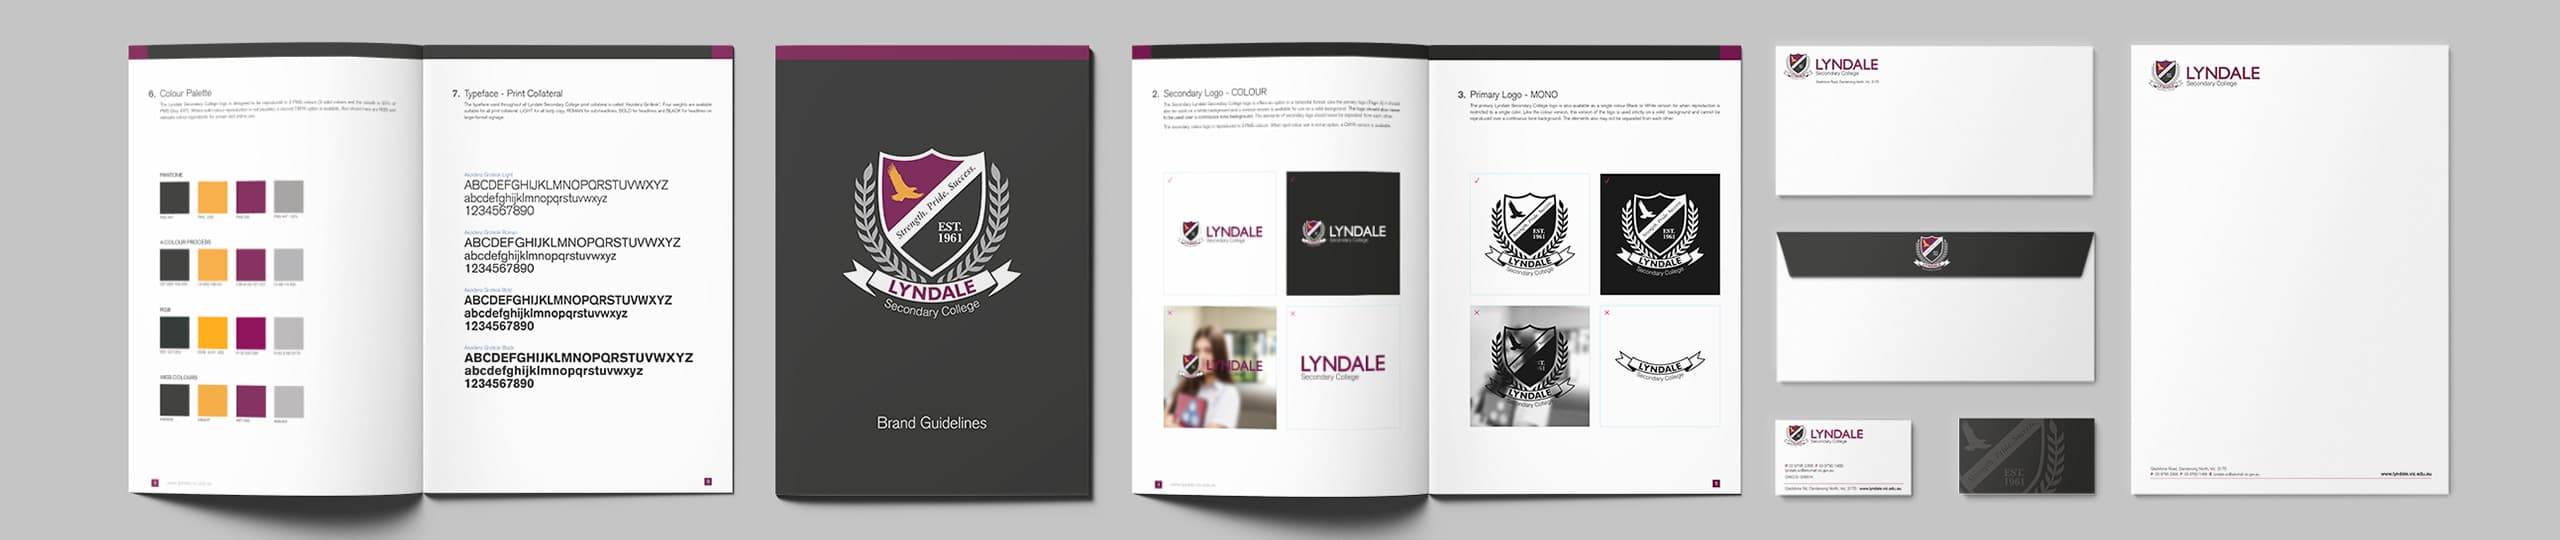 Lyndale Secondary College Brand Guidelines Brand Strategy Marketing Campaign Brand Design